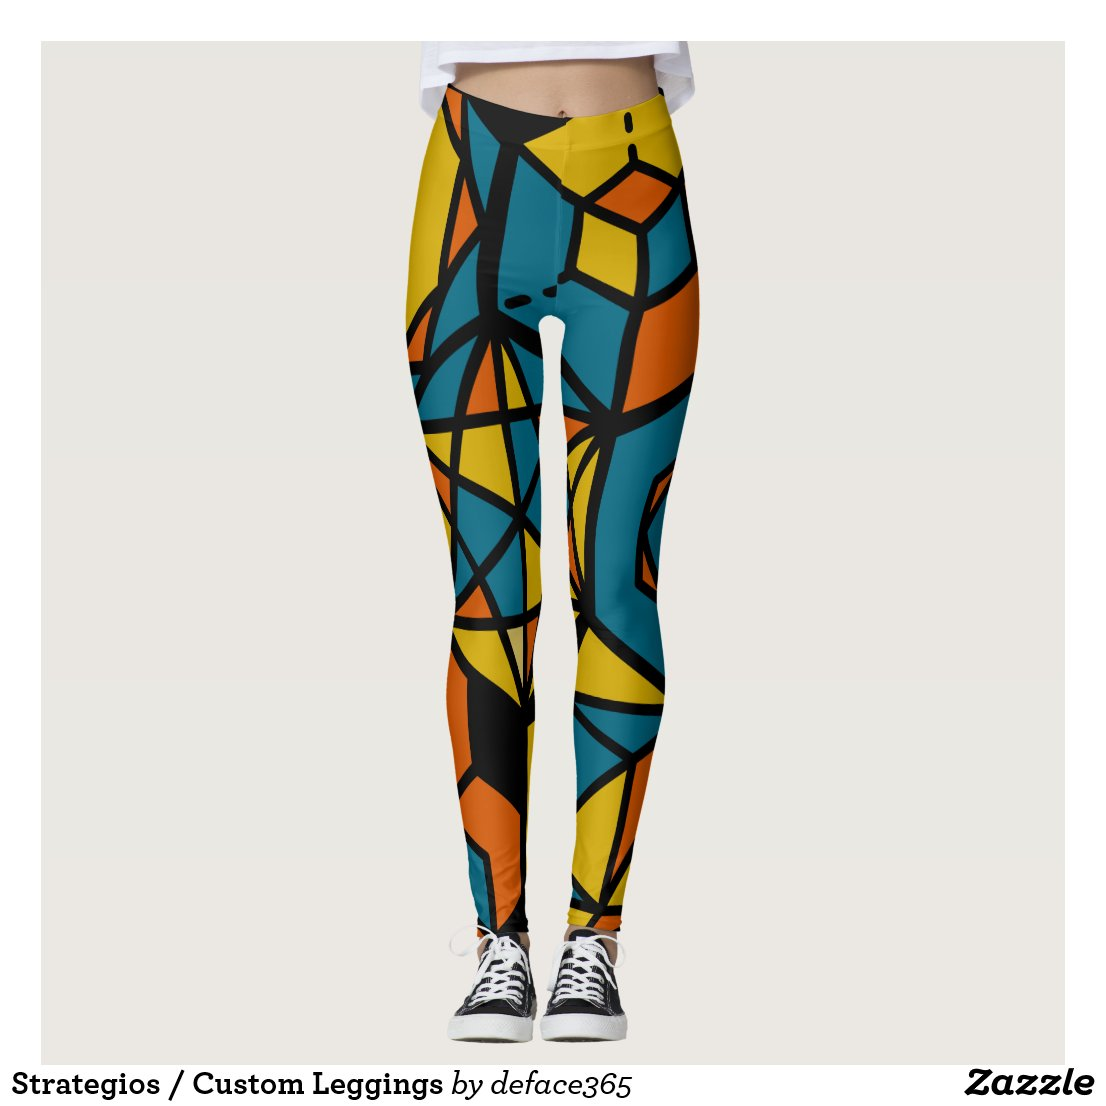 Strategios / Custom Leggings